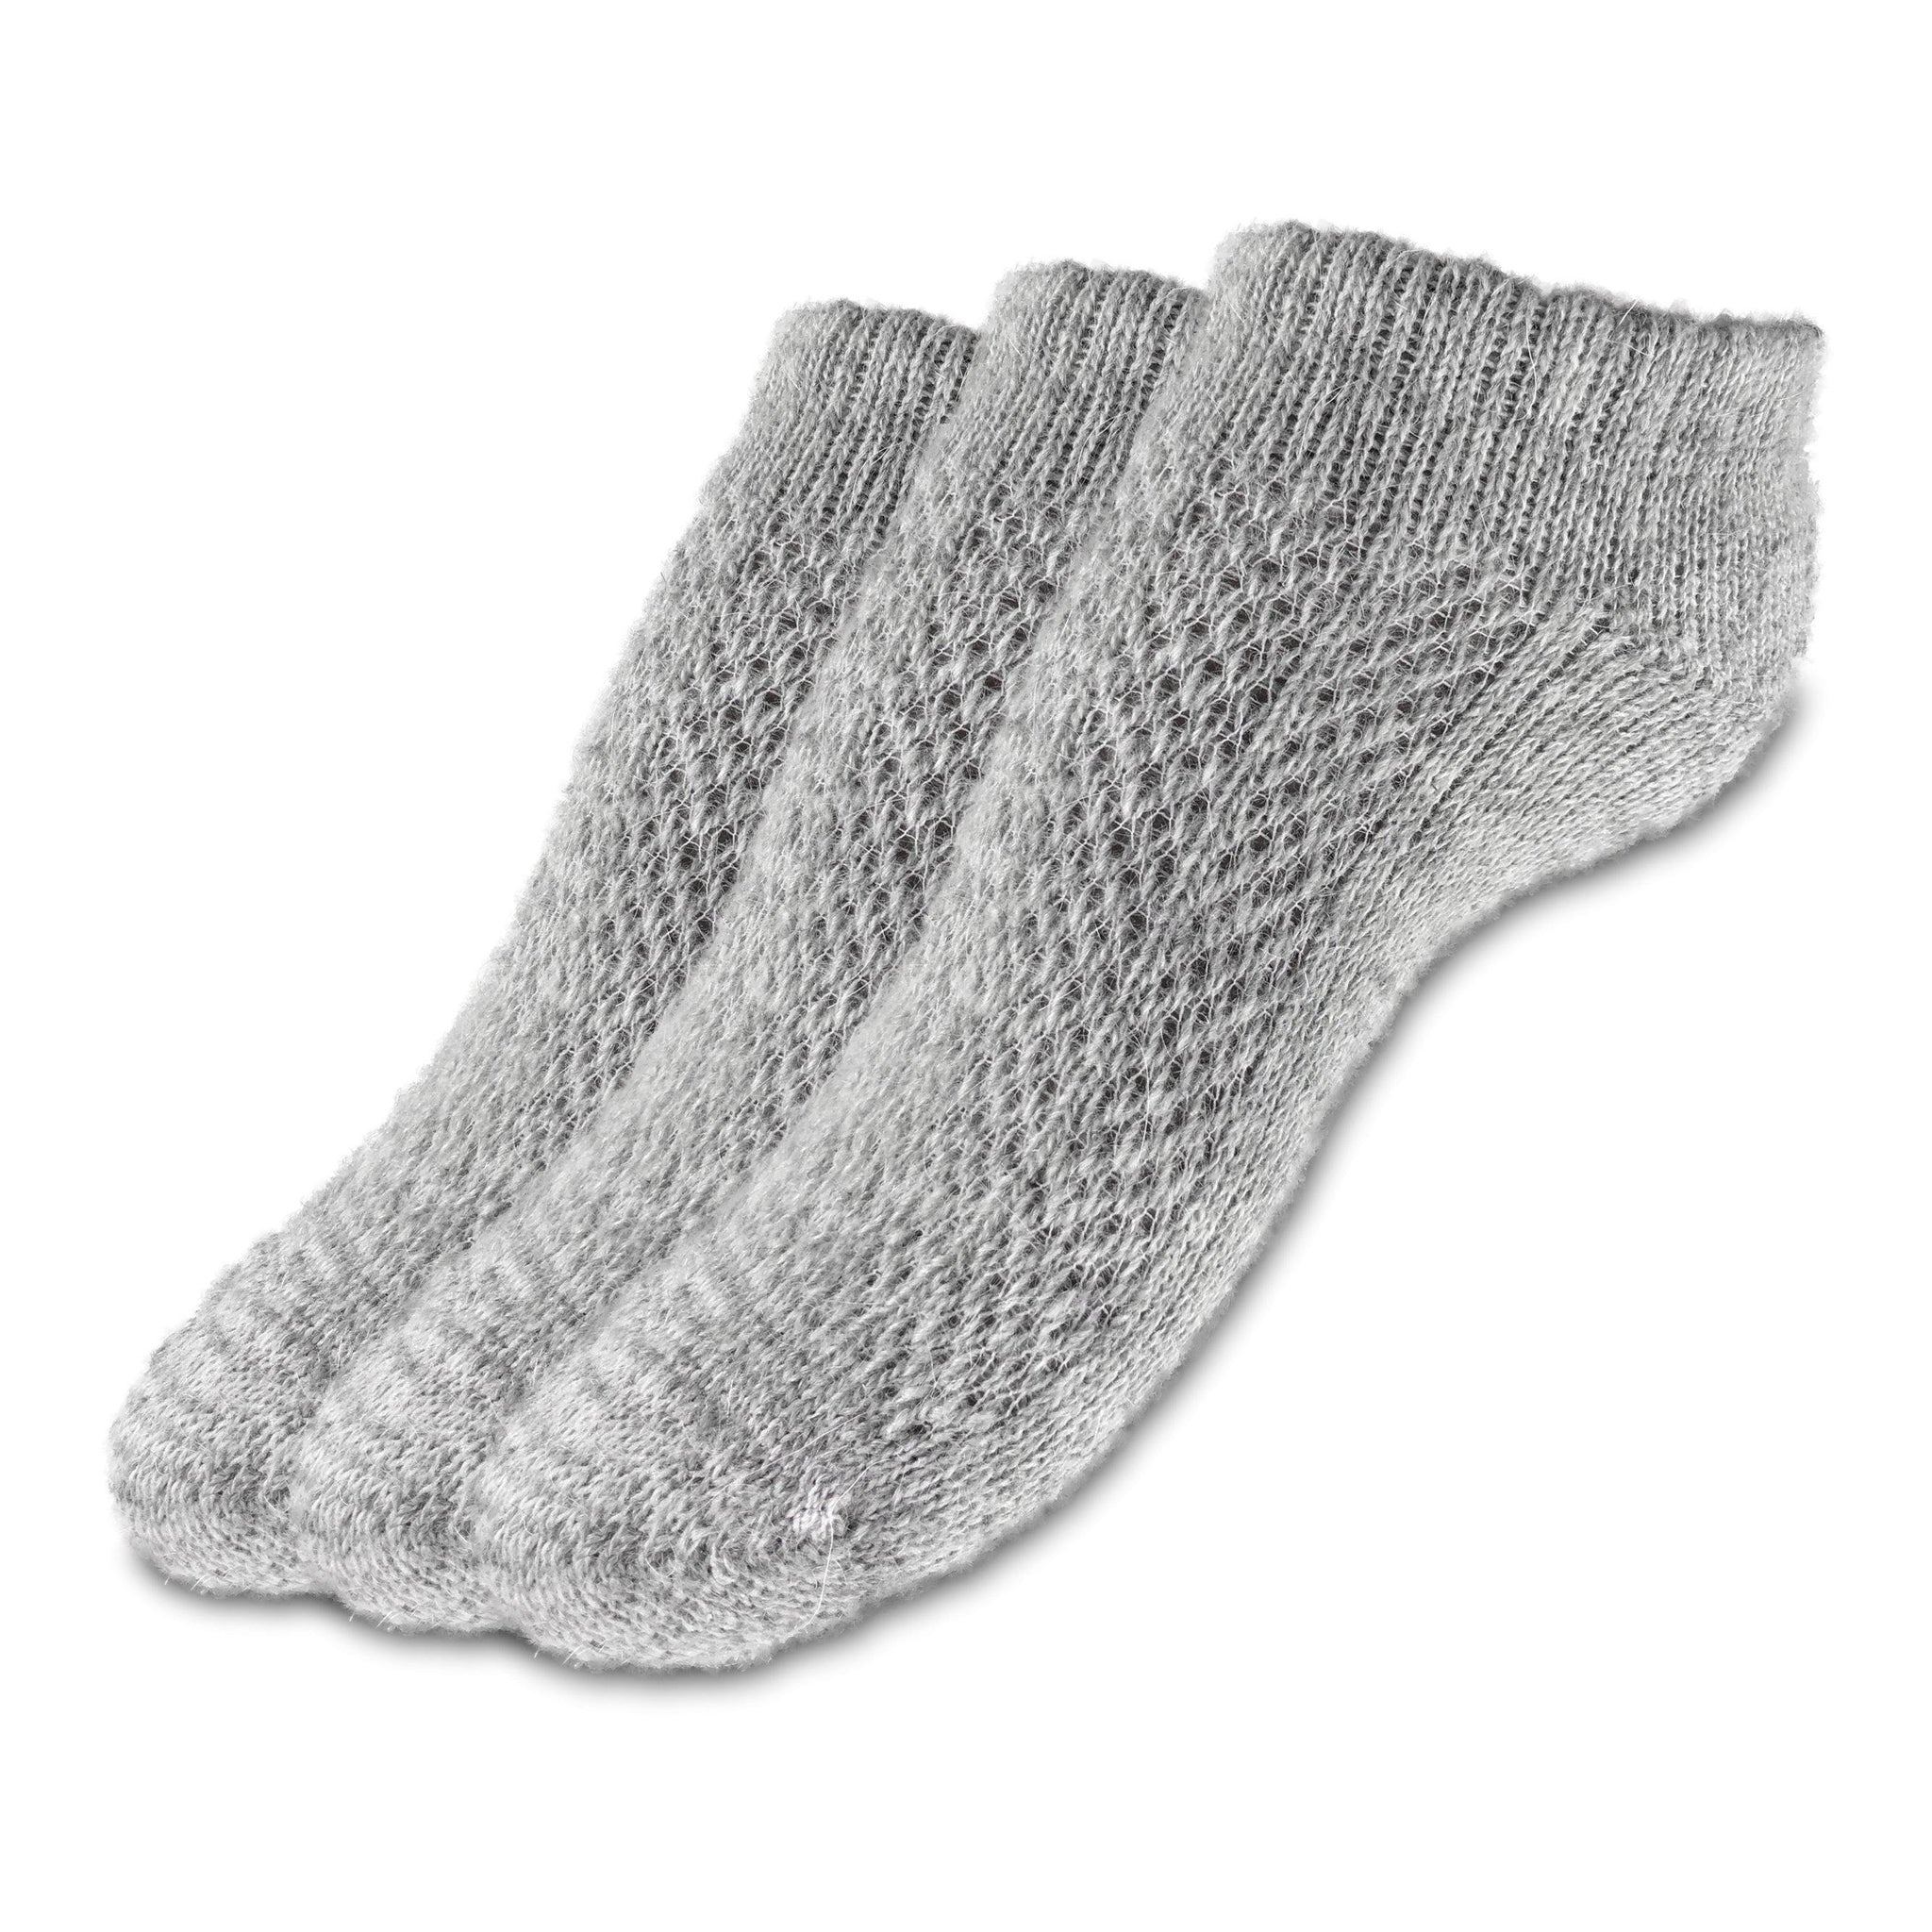 Warm Soft Camel Wool Fluff Socks for Cold Weather Winter